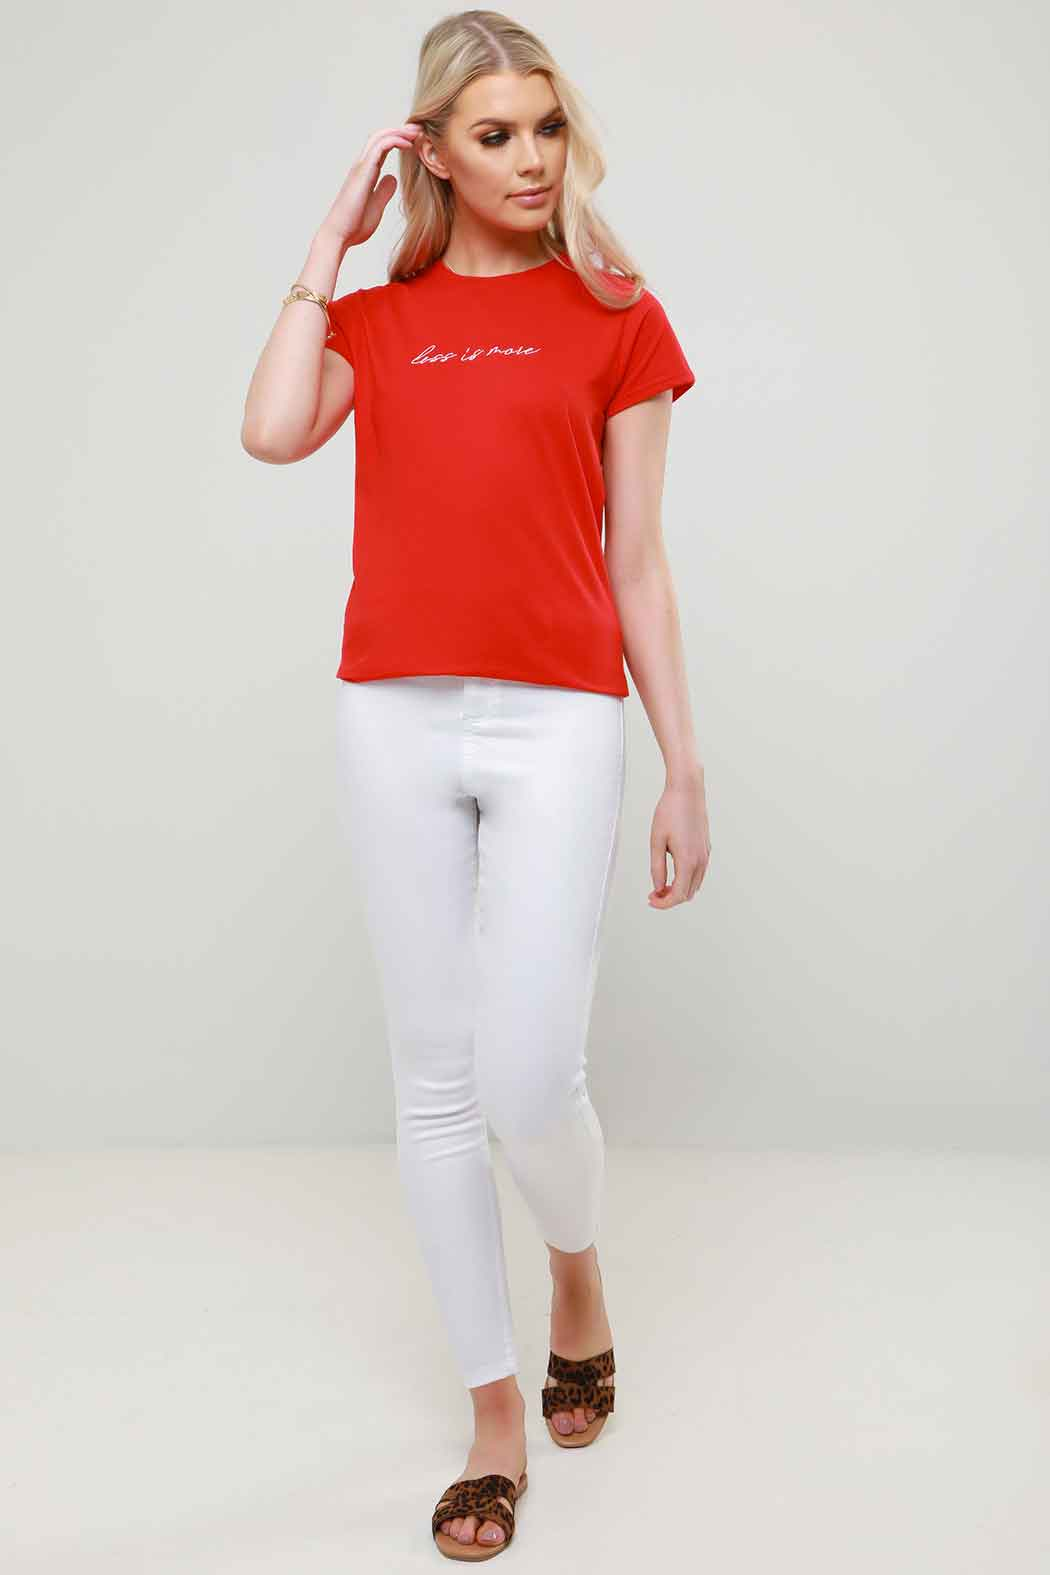 Ethie Red Embroidered Logo T-Shirt